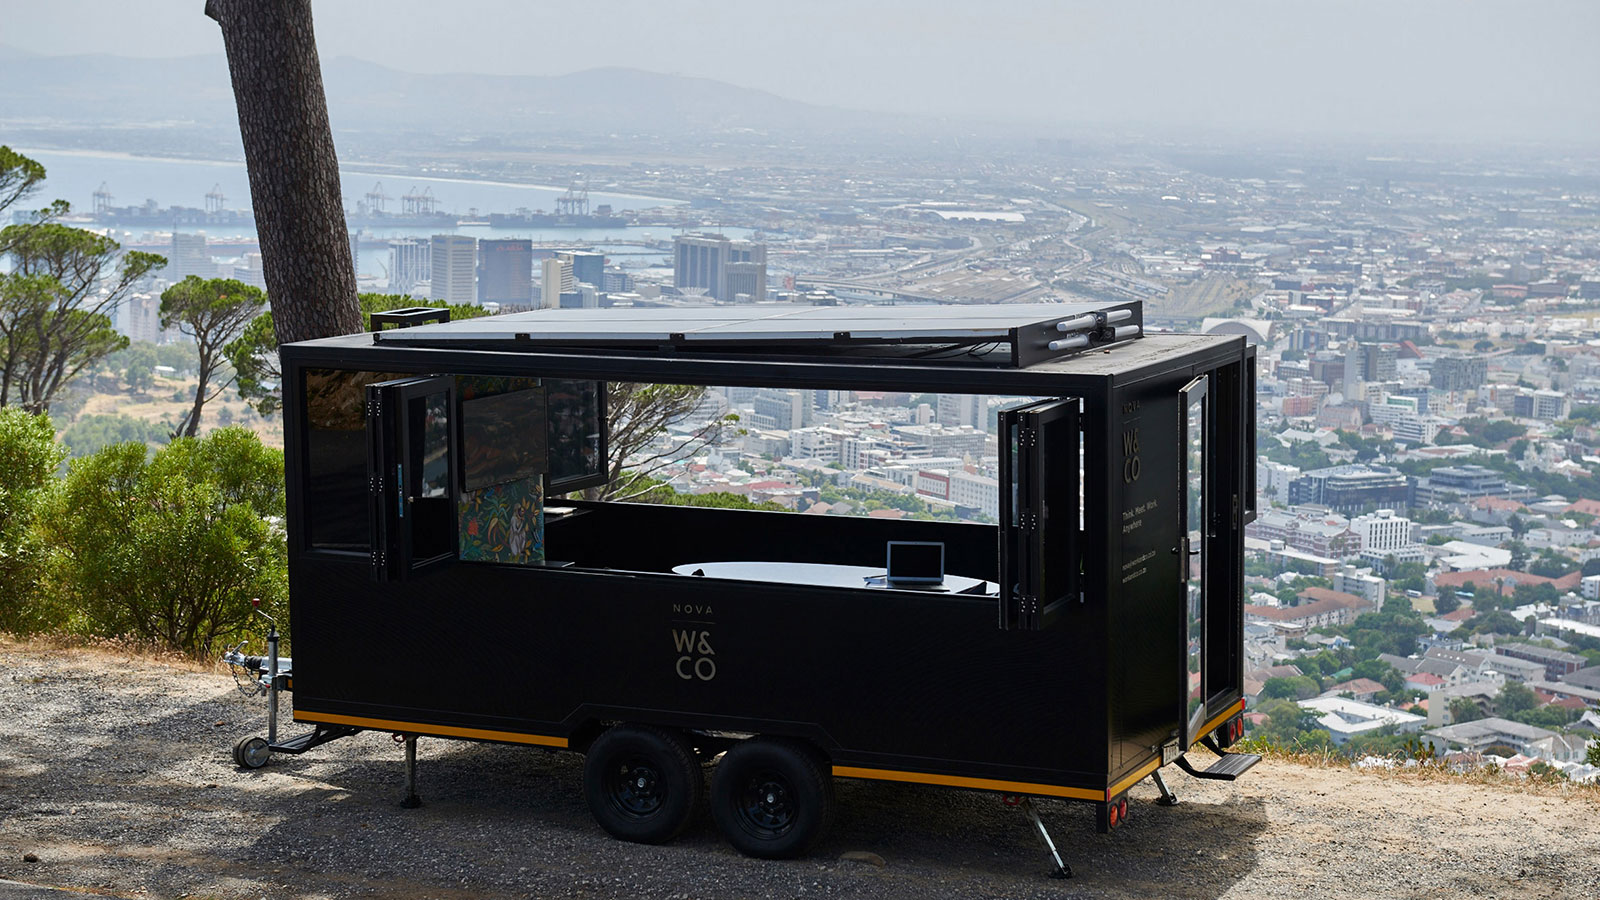 Nova nomadic coworking pod in South Africa. It can be hitched to the back of a truck and towed wherever there are roads, with solar power providing electricity to power laptops